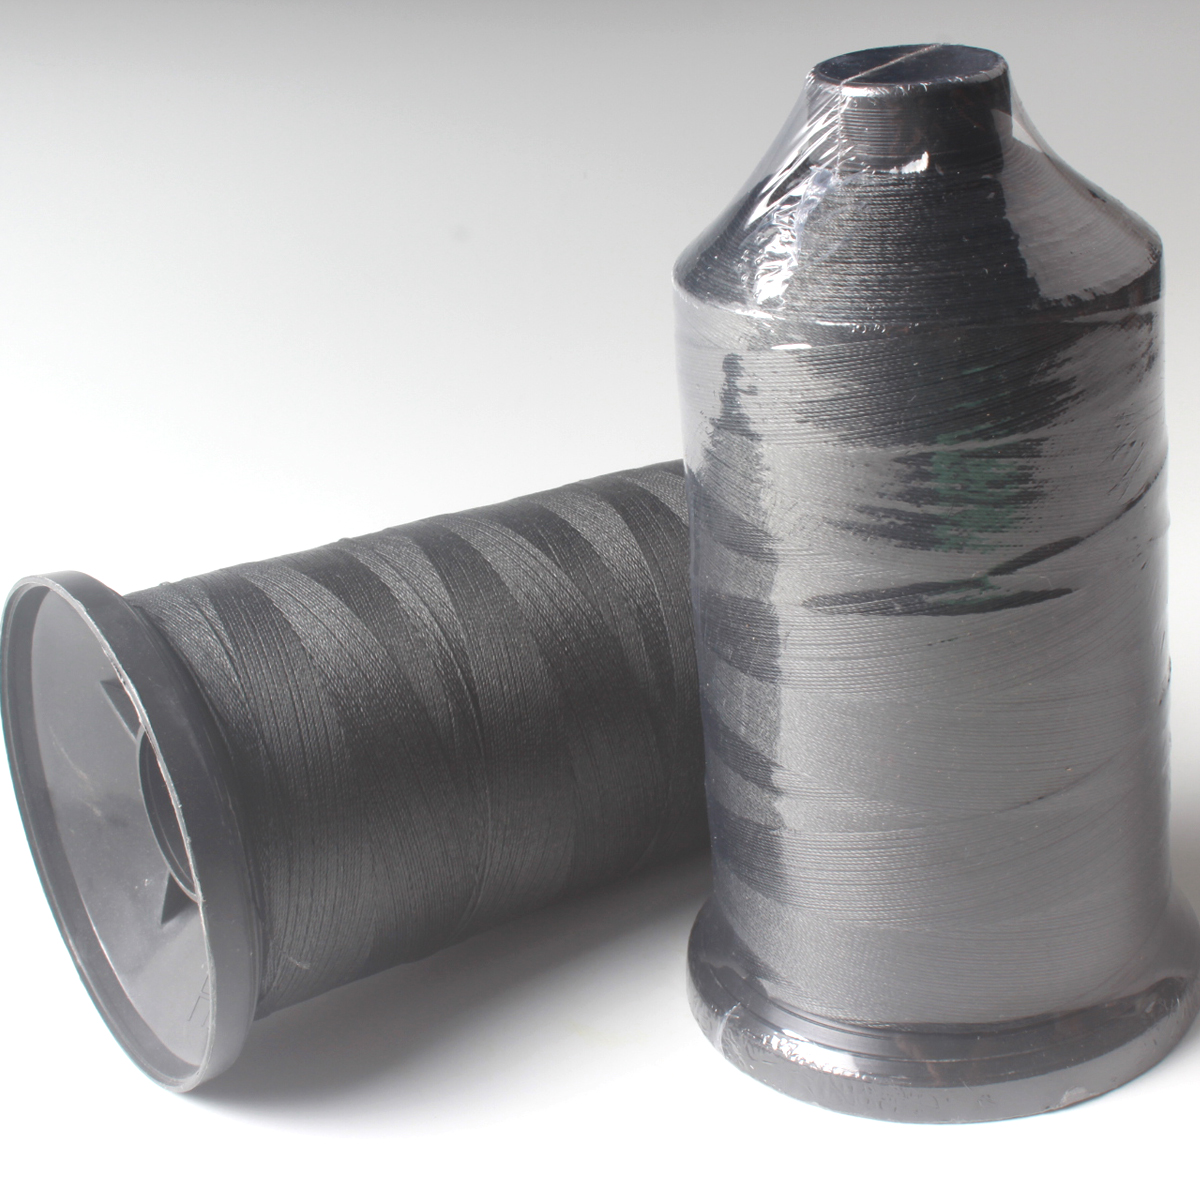 1kg/spool 1200D/3weave 0.90mm 90kg Braid UHMWPE Sewing Thread for webbing/strap/fabric/cloth/bag/garment